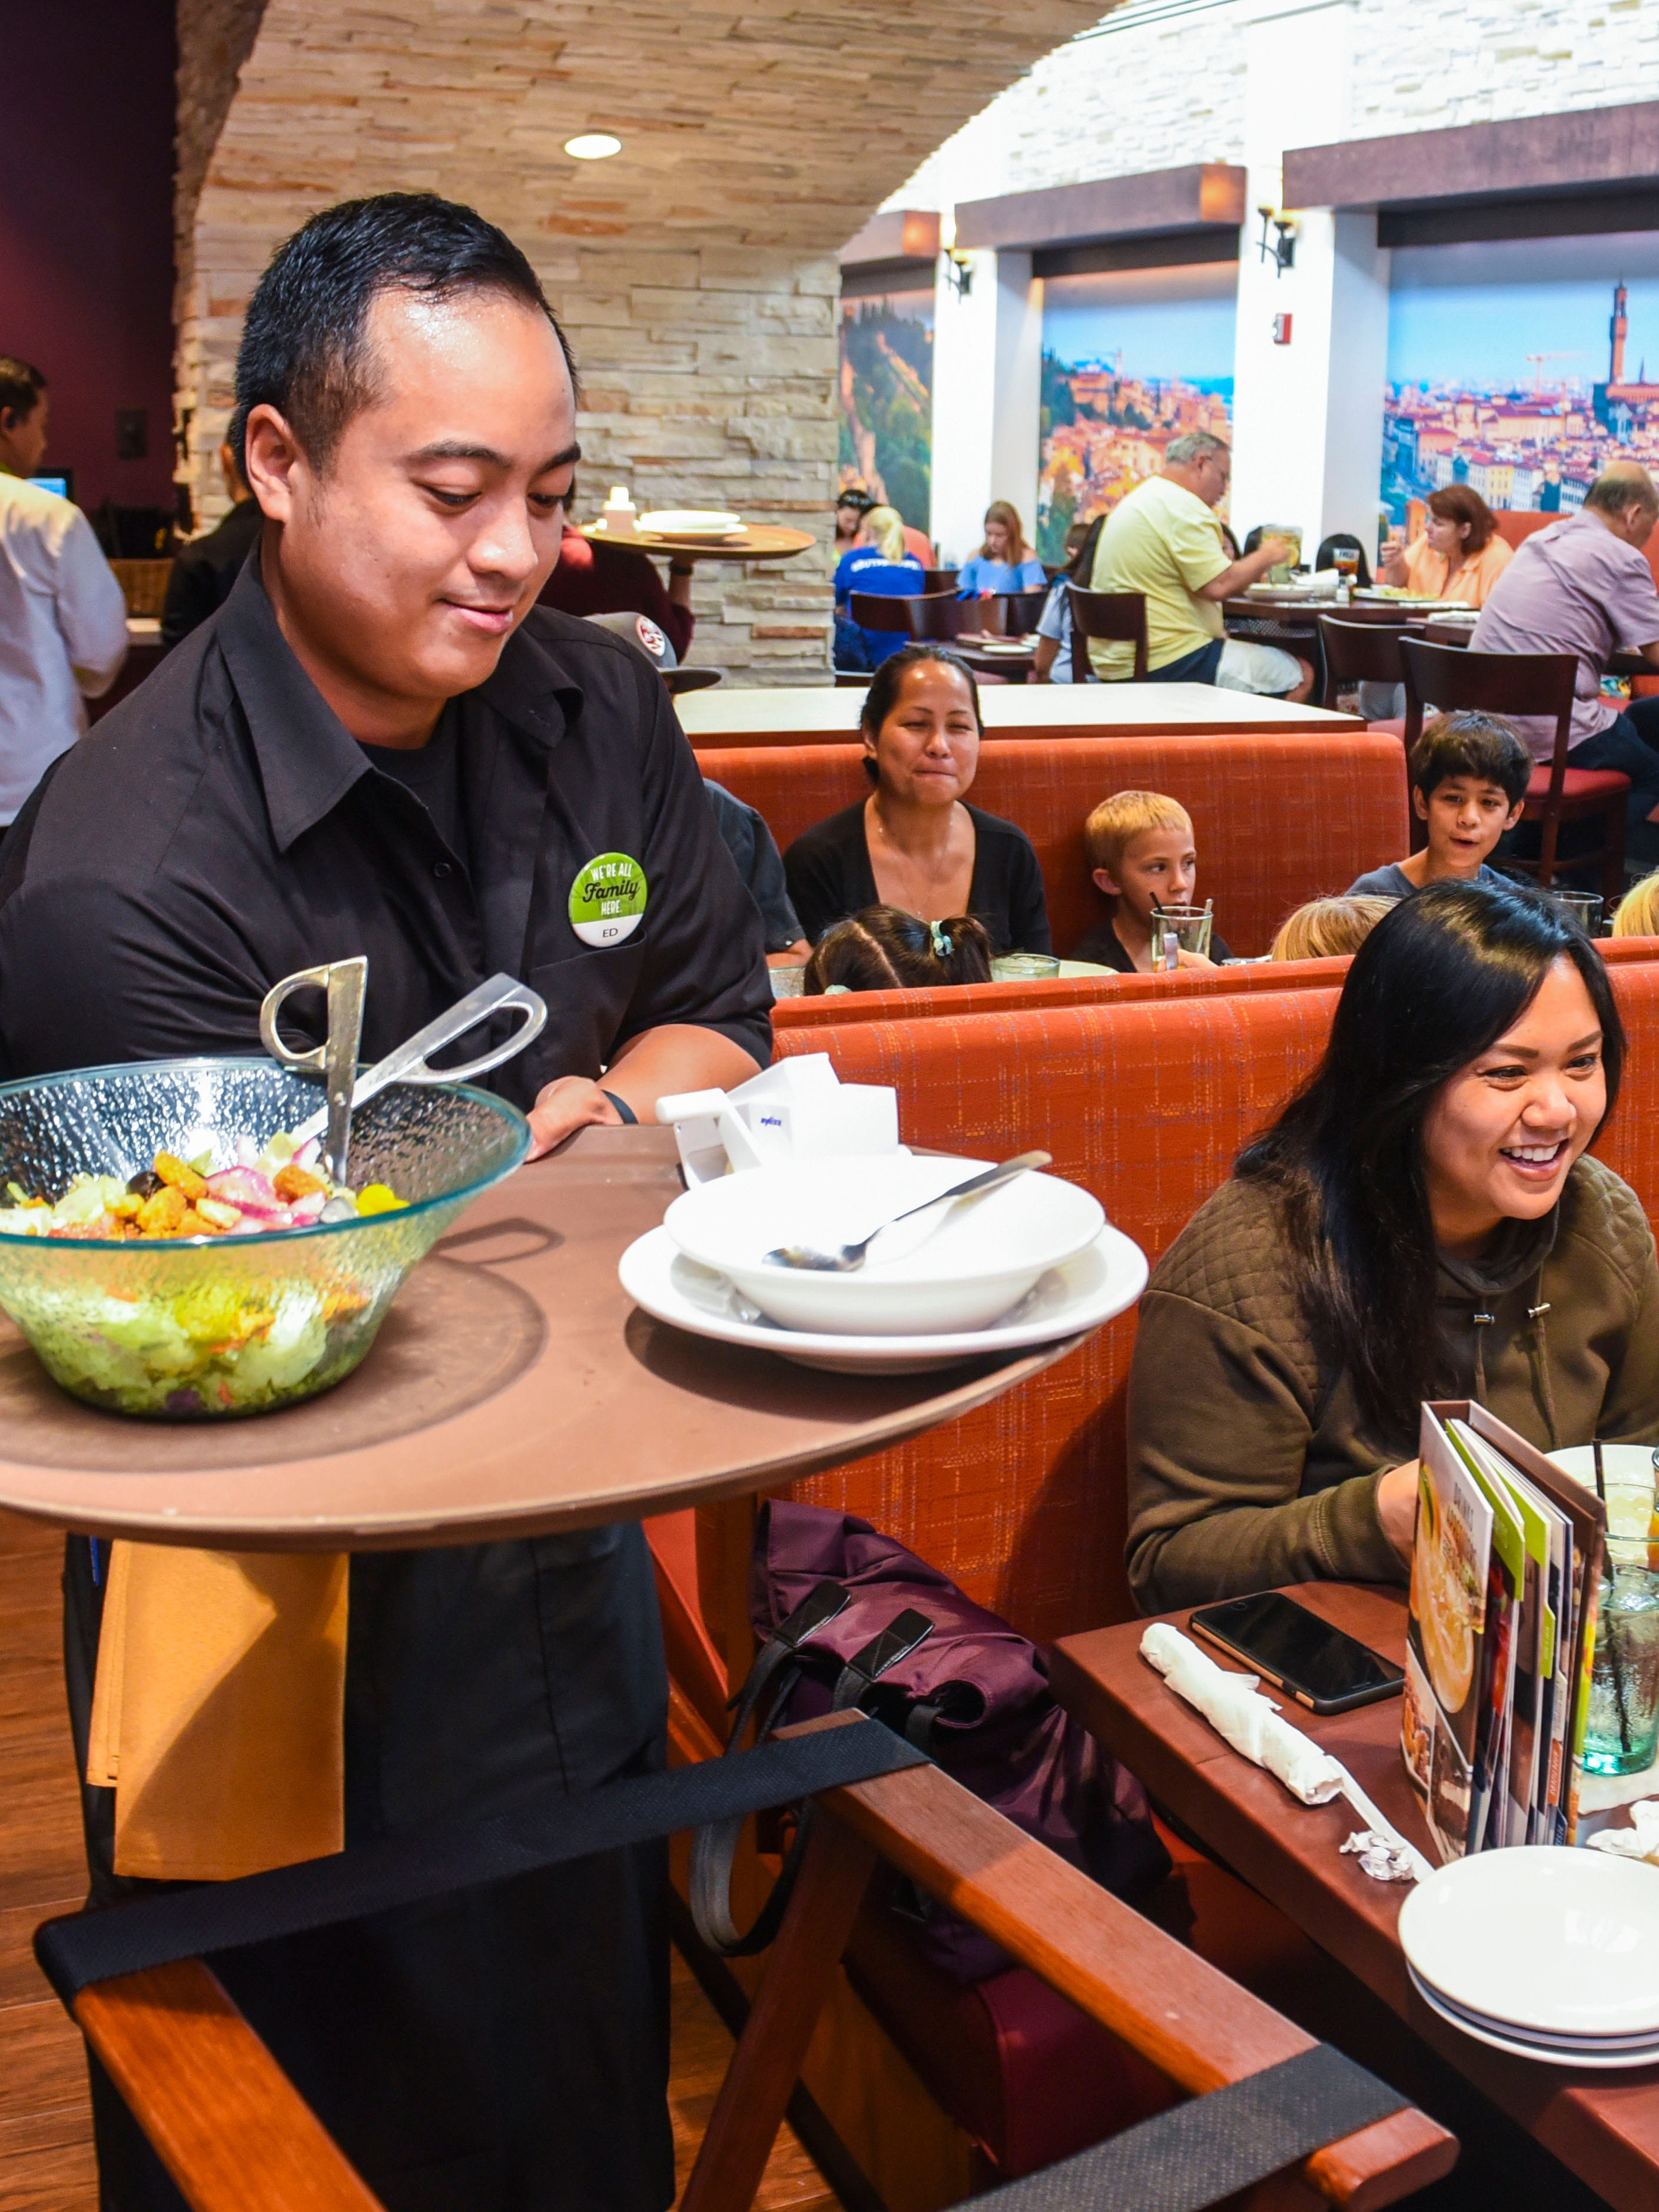 Server Ed Estillore, right, prepares to present diners with part of their order during the first day of business at the Olive Garden restarant in Tumon on Tuesday, Oct. 9, 2018.